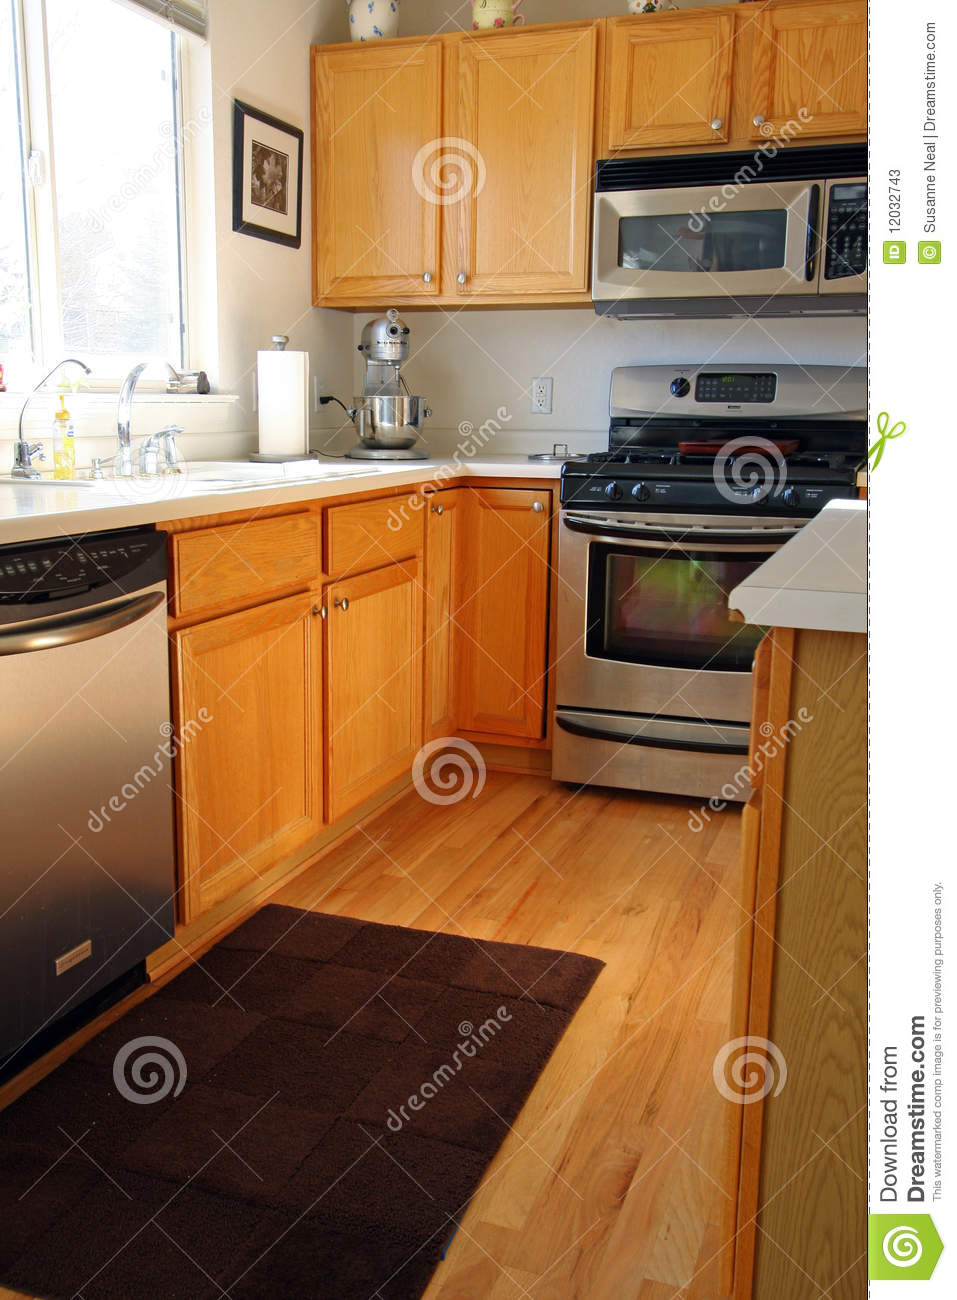 wood tile floor kitchen commercial refrigerator modern cabinets in oak stock photos - image: 12032743